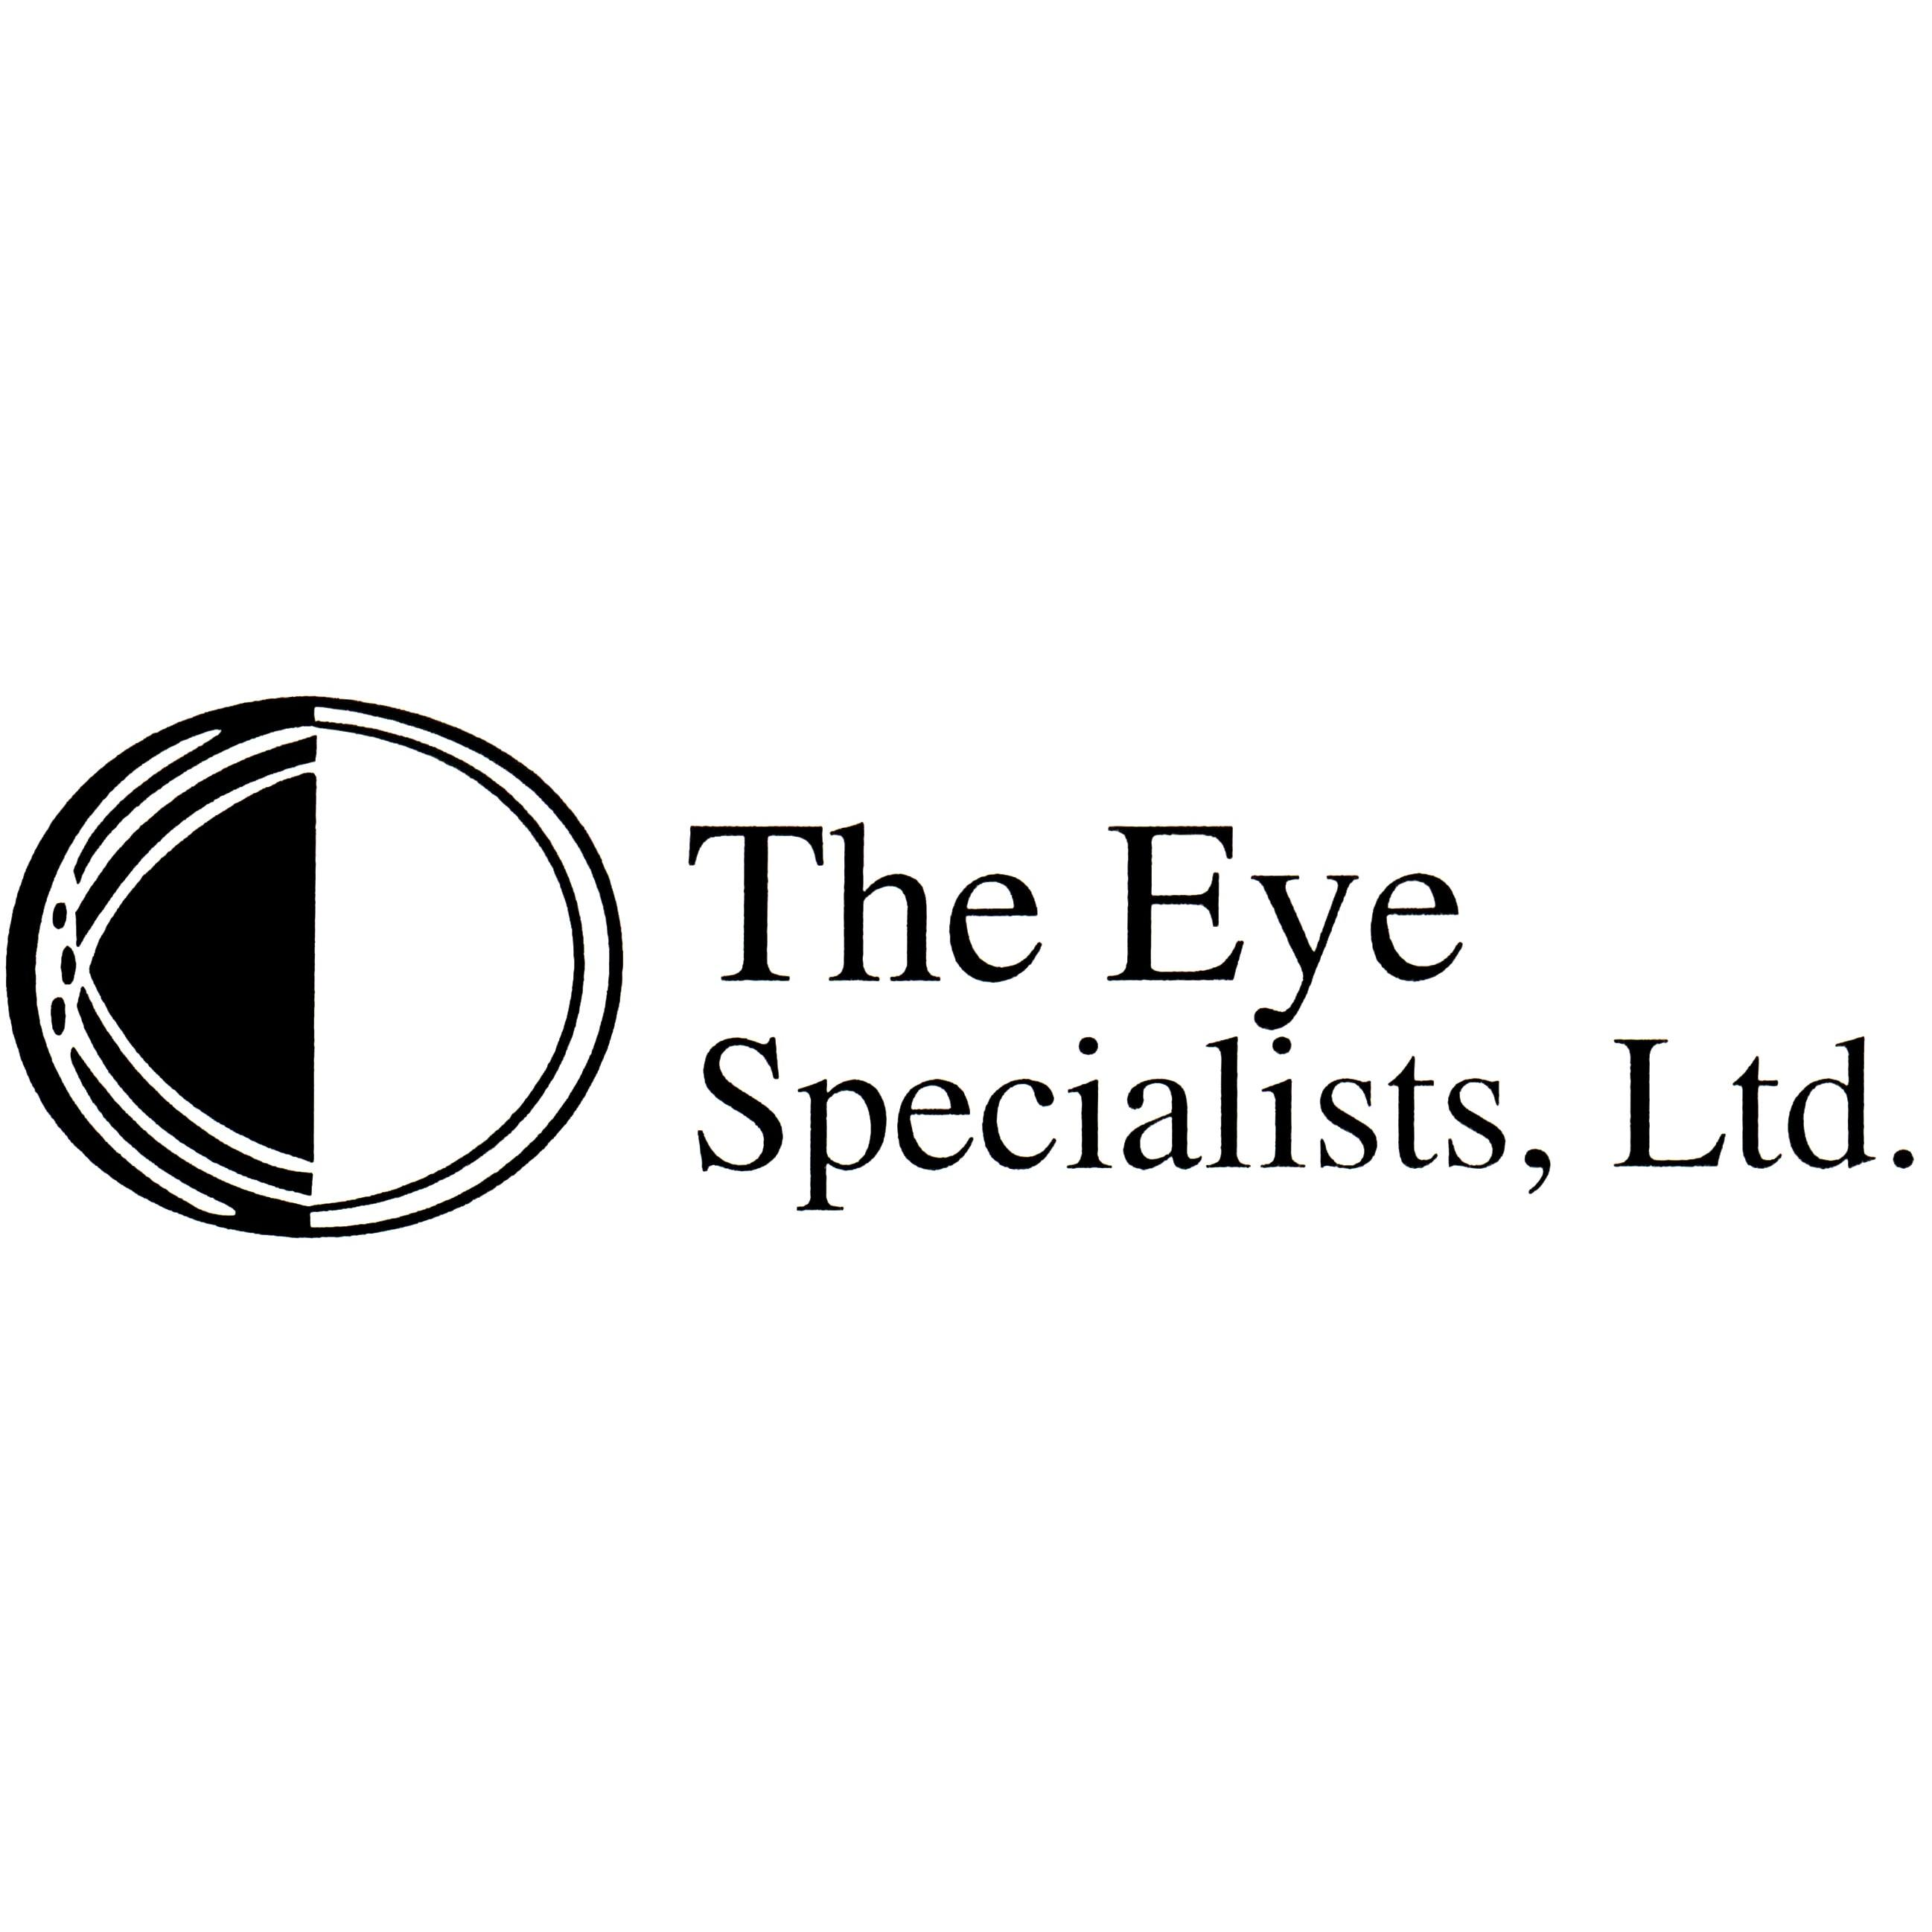 The Eye Specialists LTD